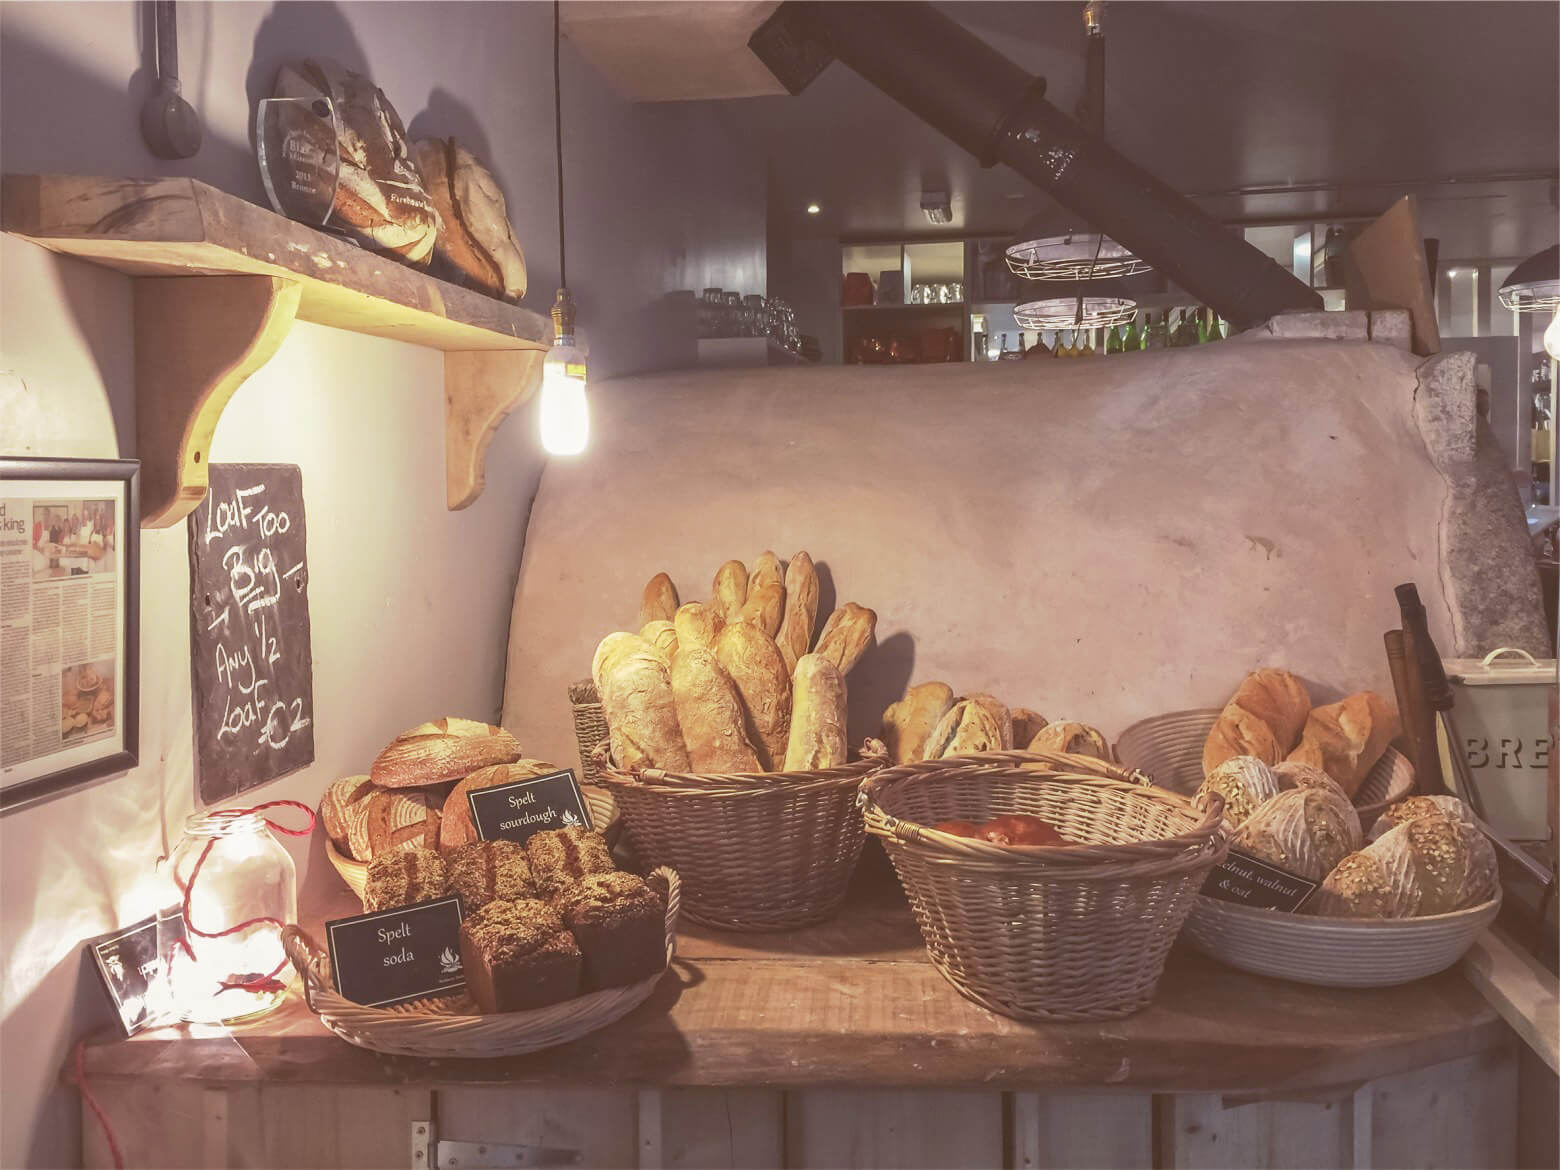 bread-bakery-baking2501-1560x1170 (1)